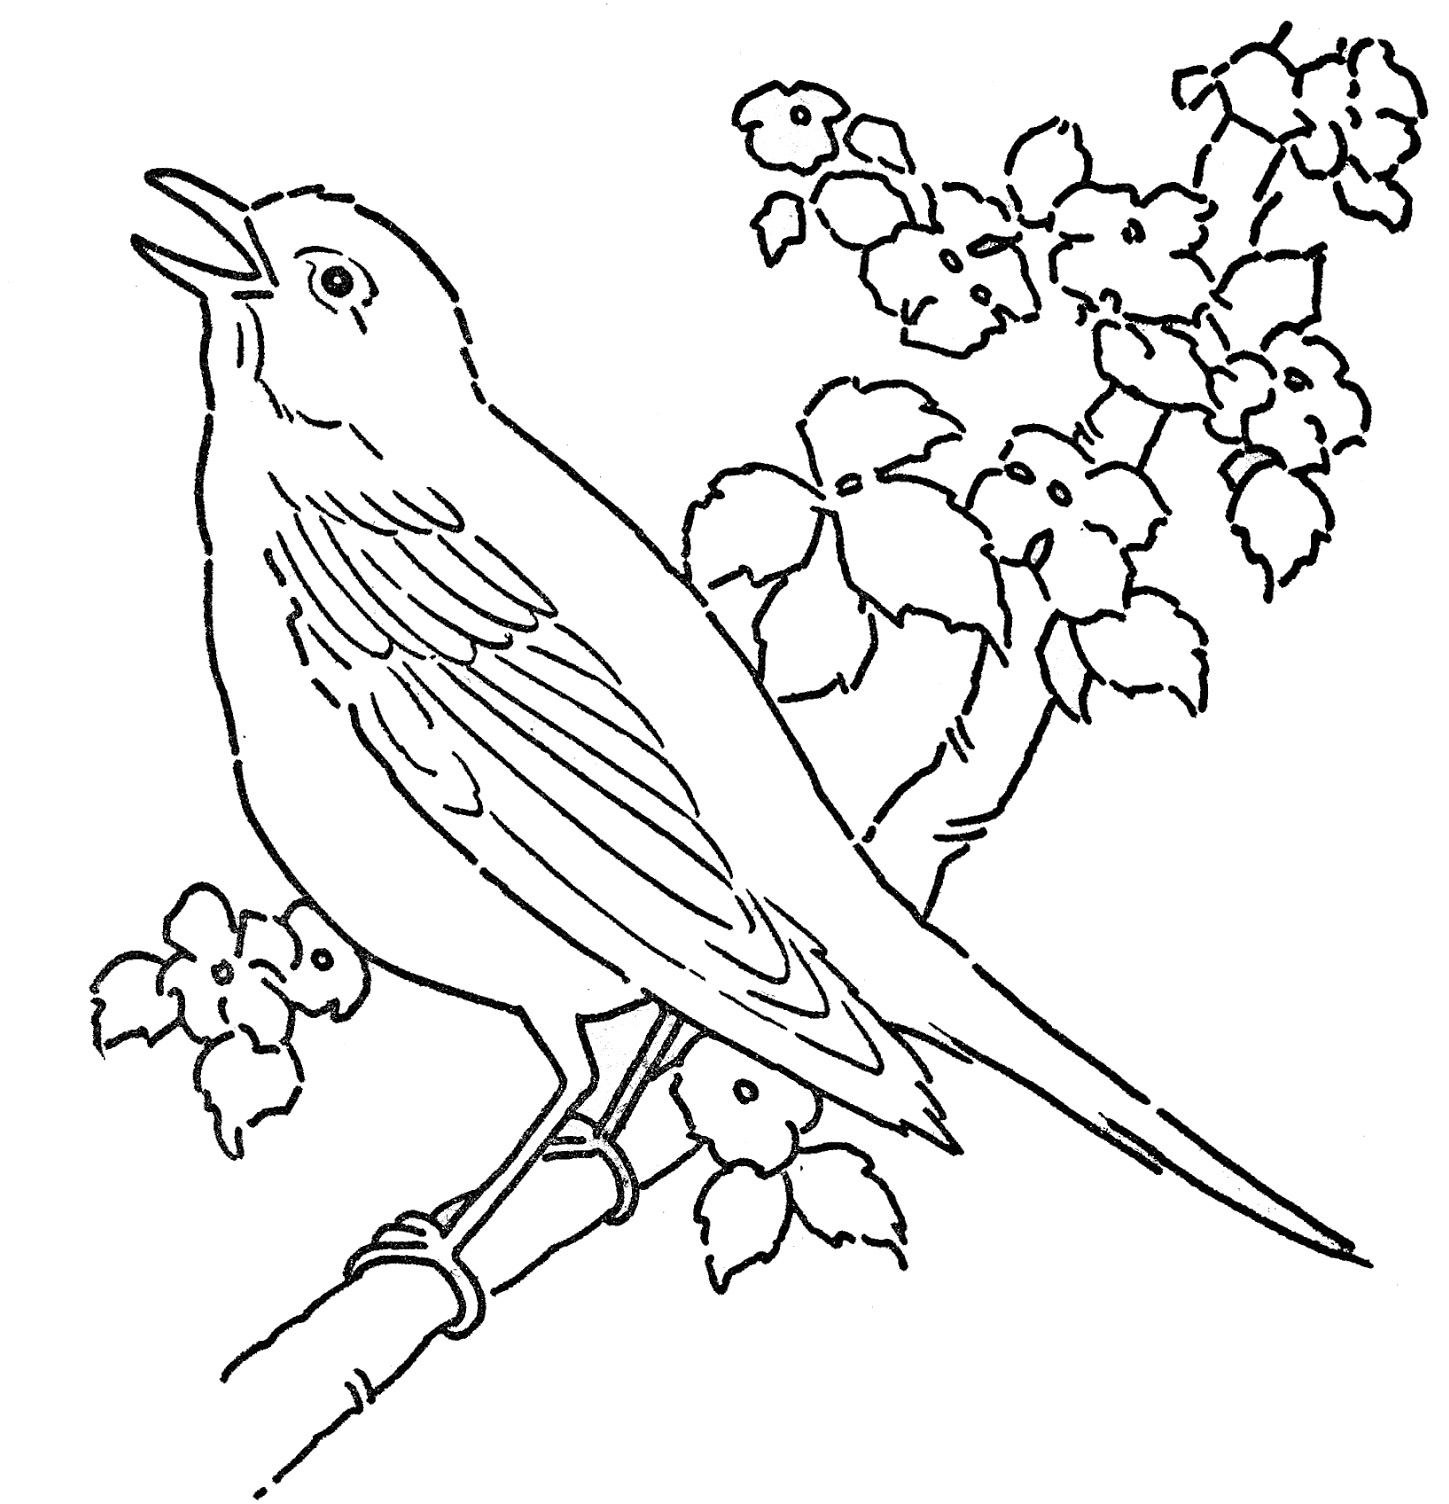 coloring bird printable bird coloring pages to download and print for free coloring bird printable